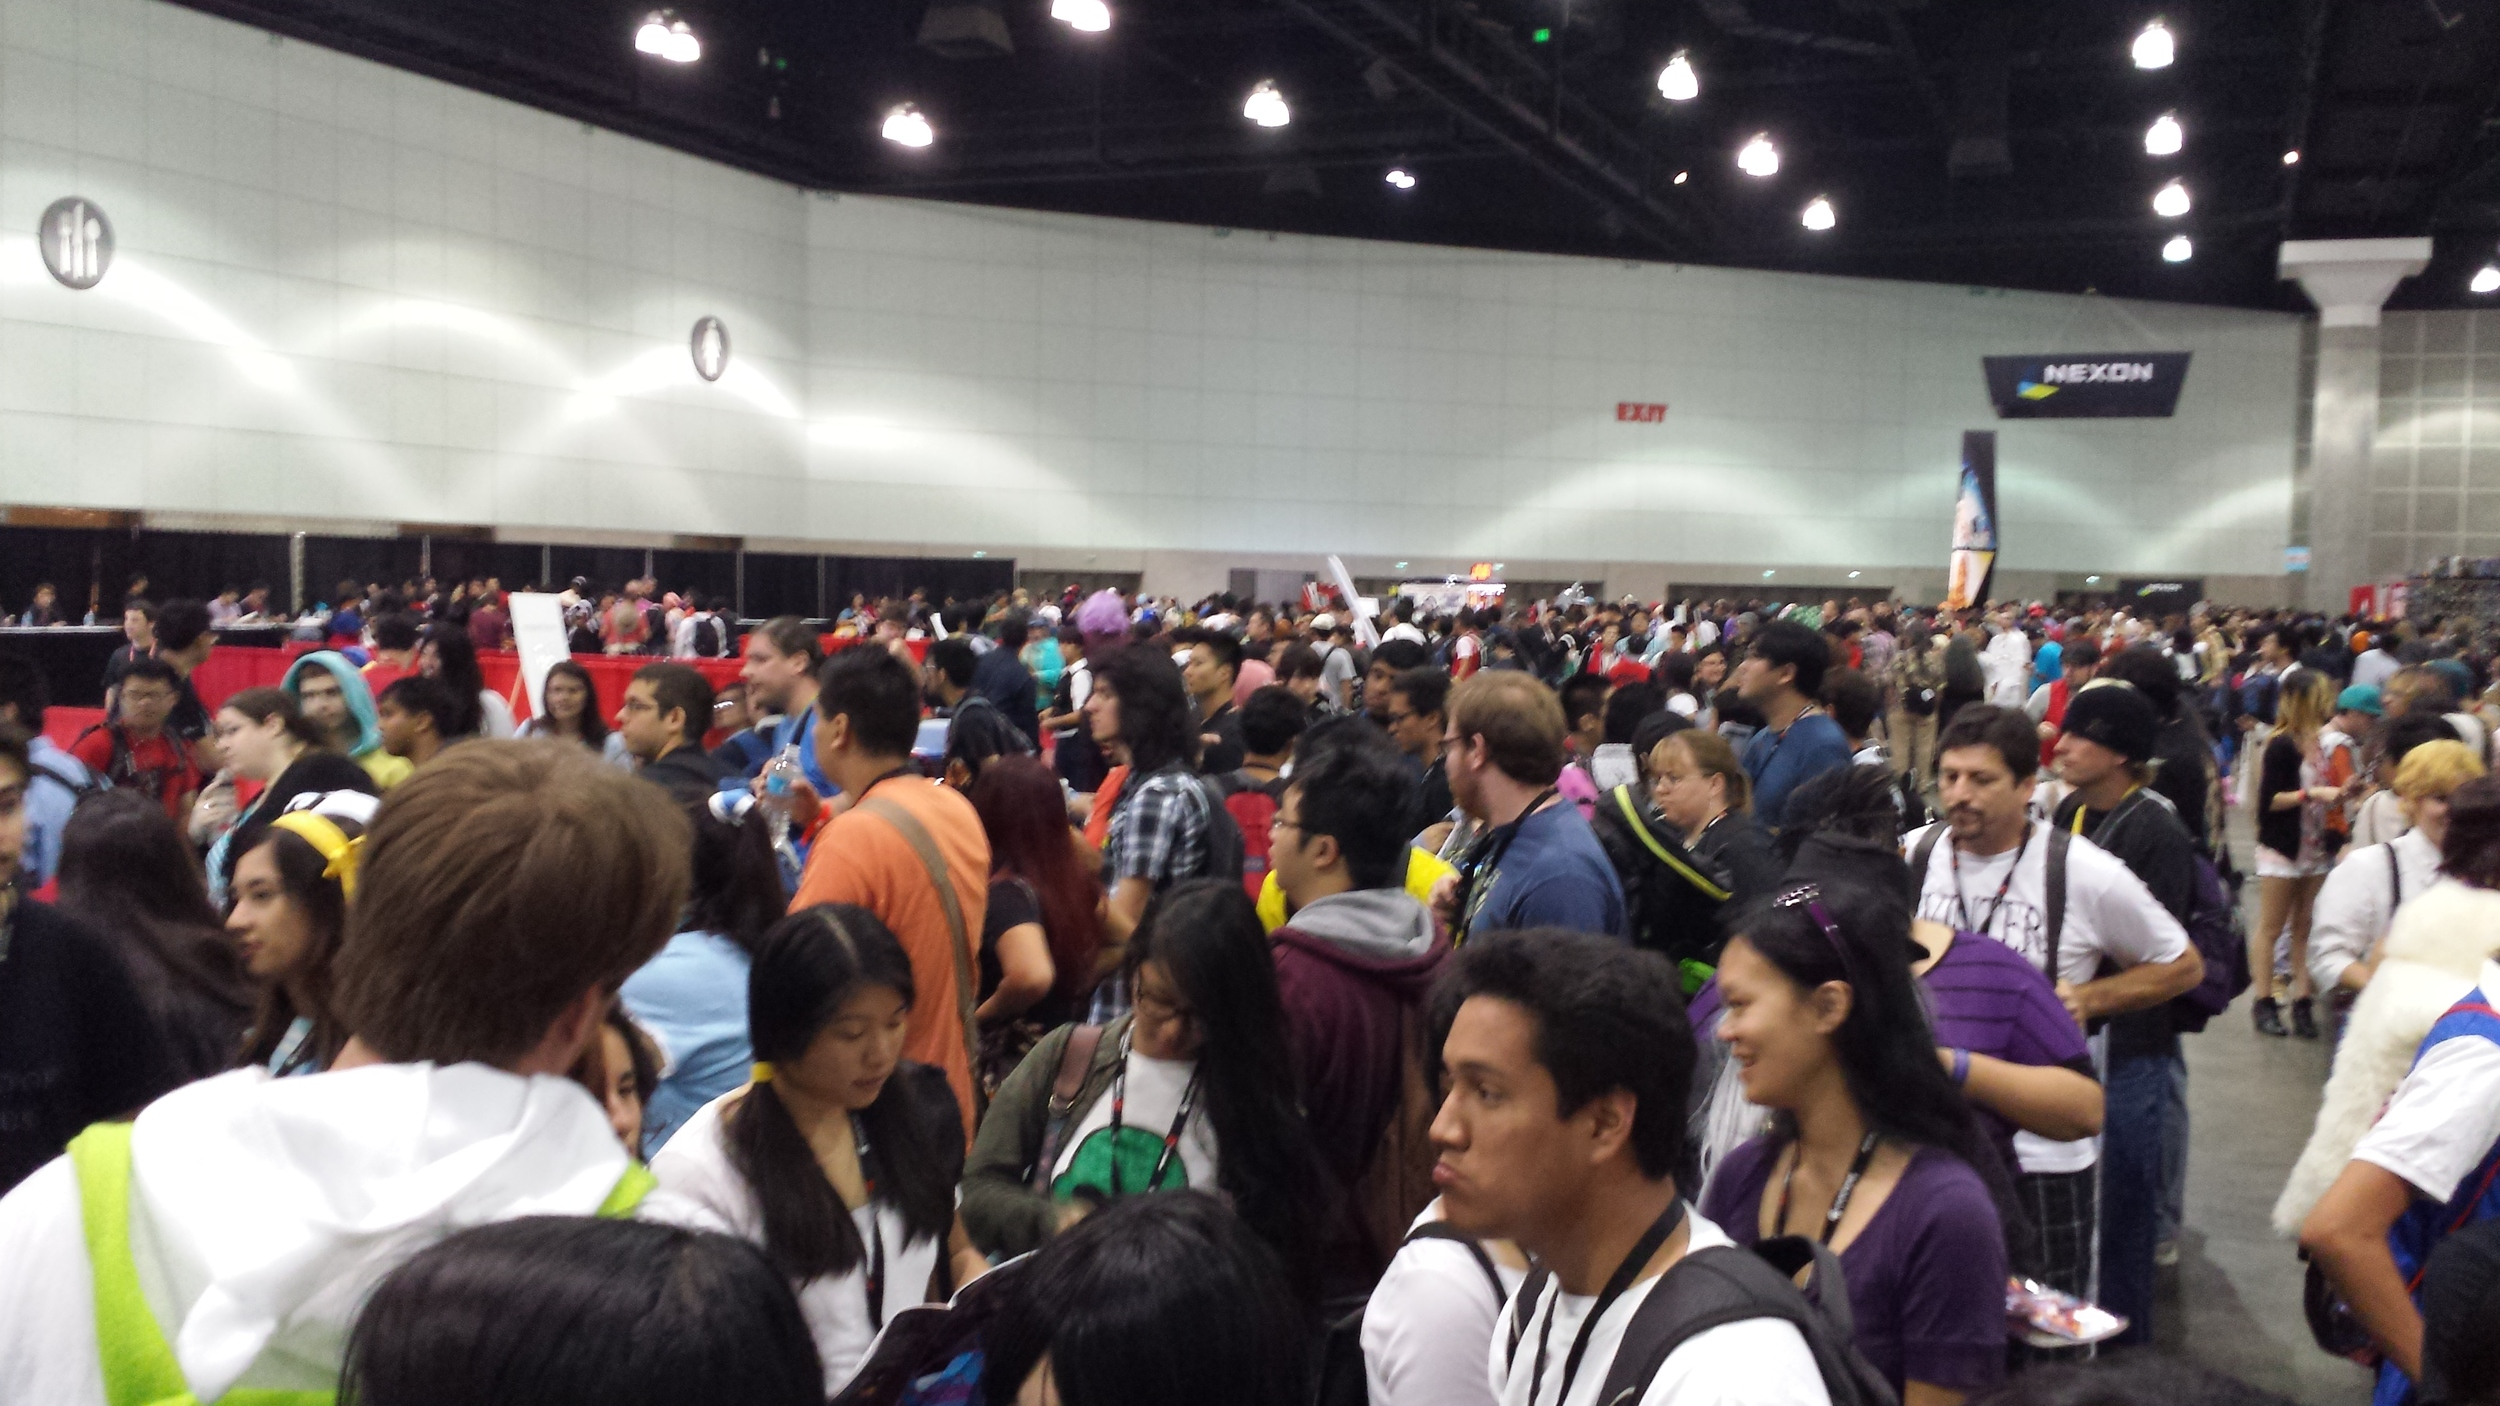 AnimeExpo 2013 - Insanity of the autograph line